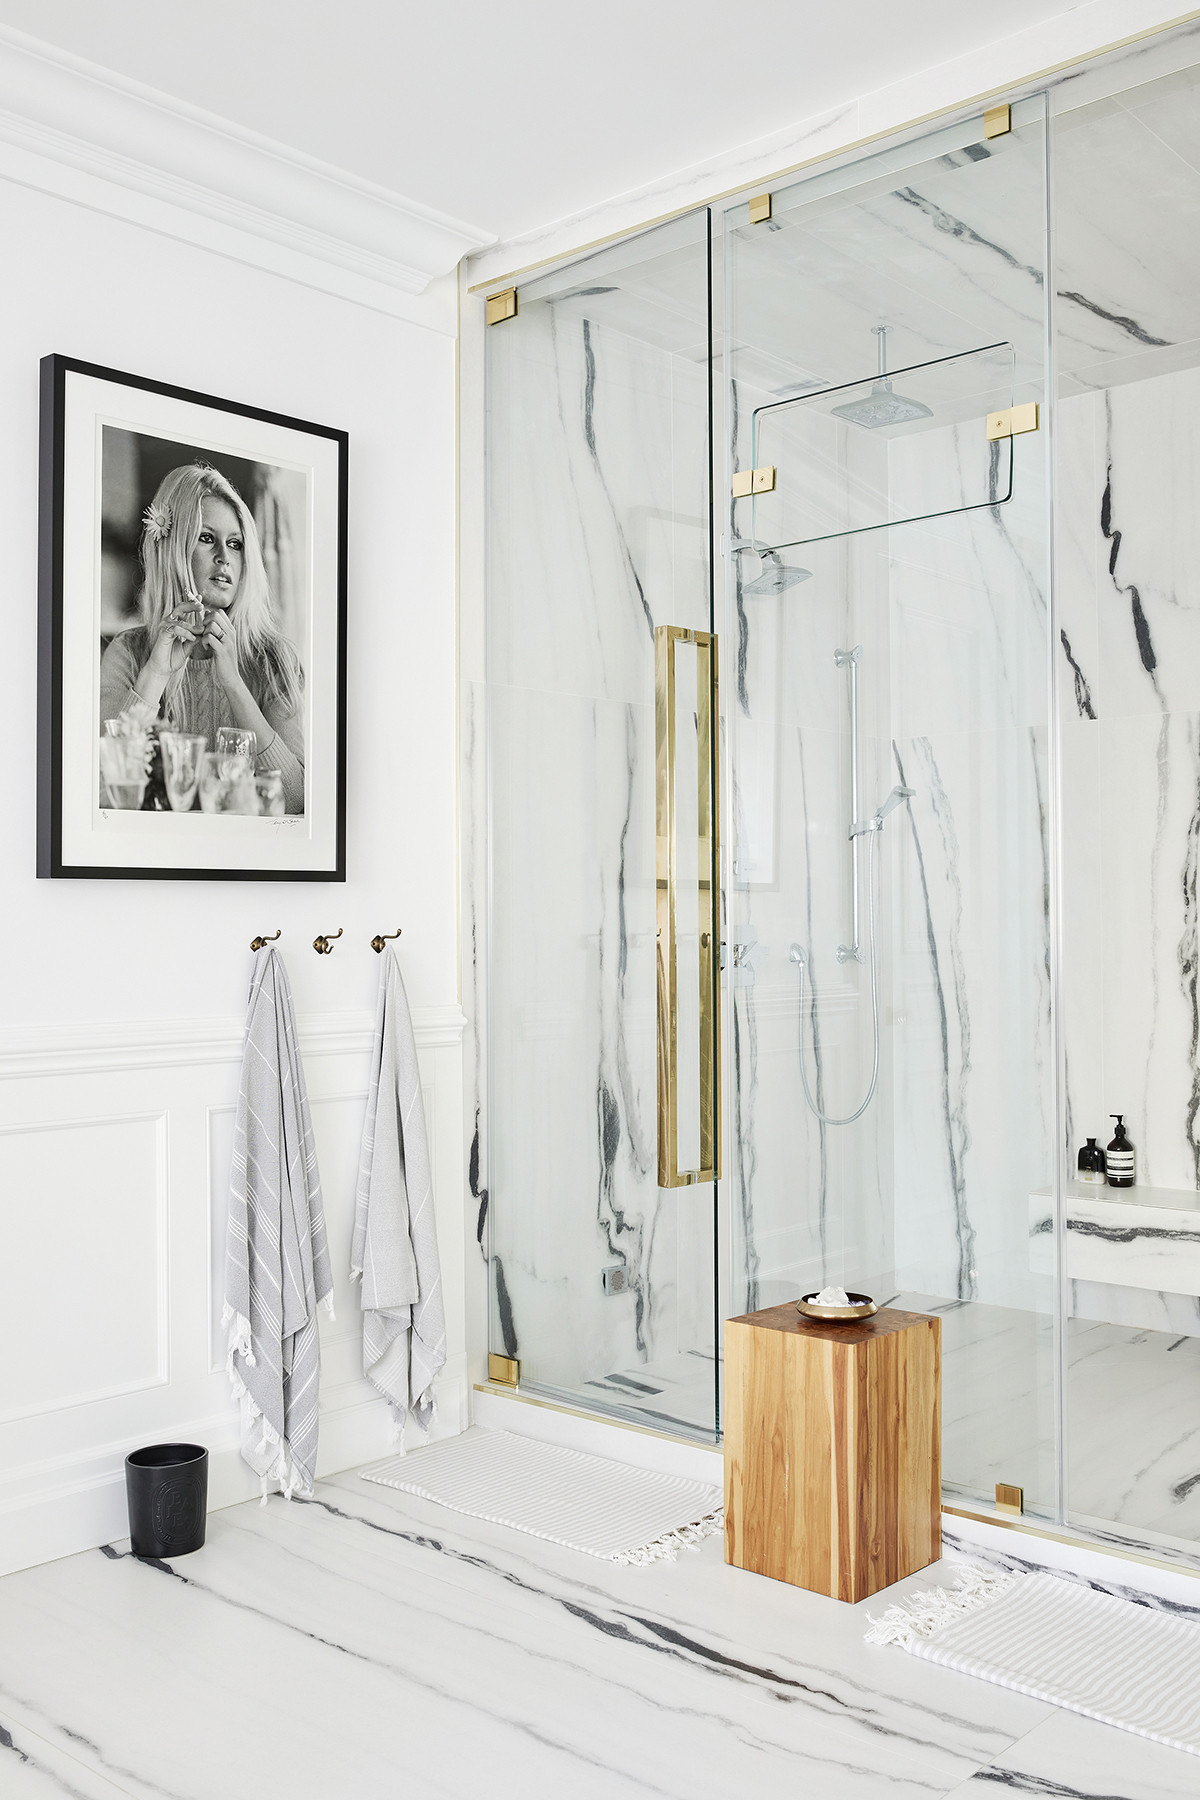 This marble spa shower is what bathroom dreams are made of complete with a stone bench to inspire completerelaxation.AesopGeranium Leaf Body Cleanser |DiptyqueBaies Ceramic Candle |Bertu HomeModern Wood Side Tables.